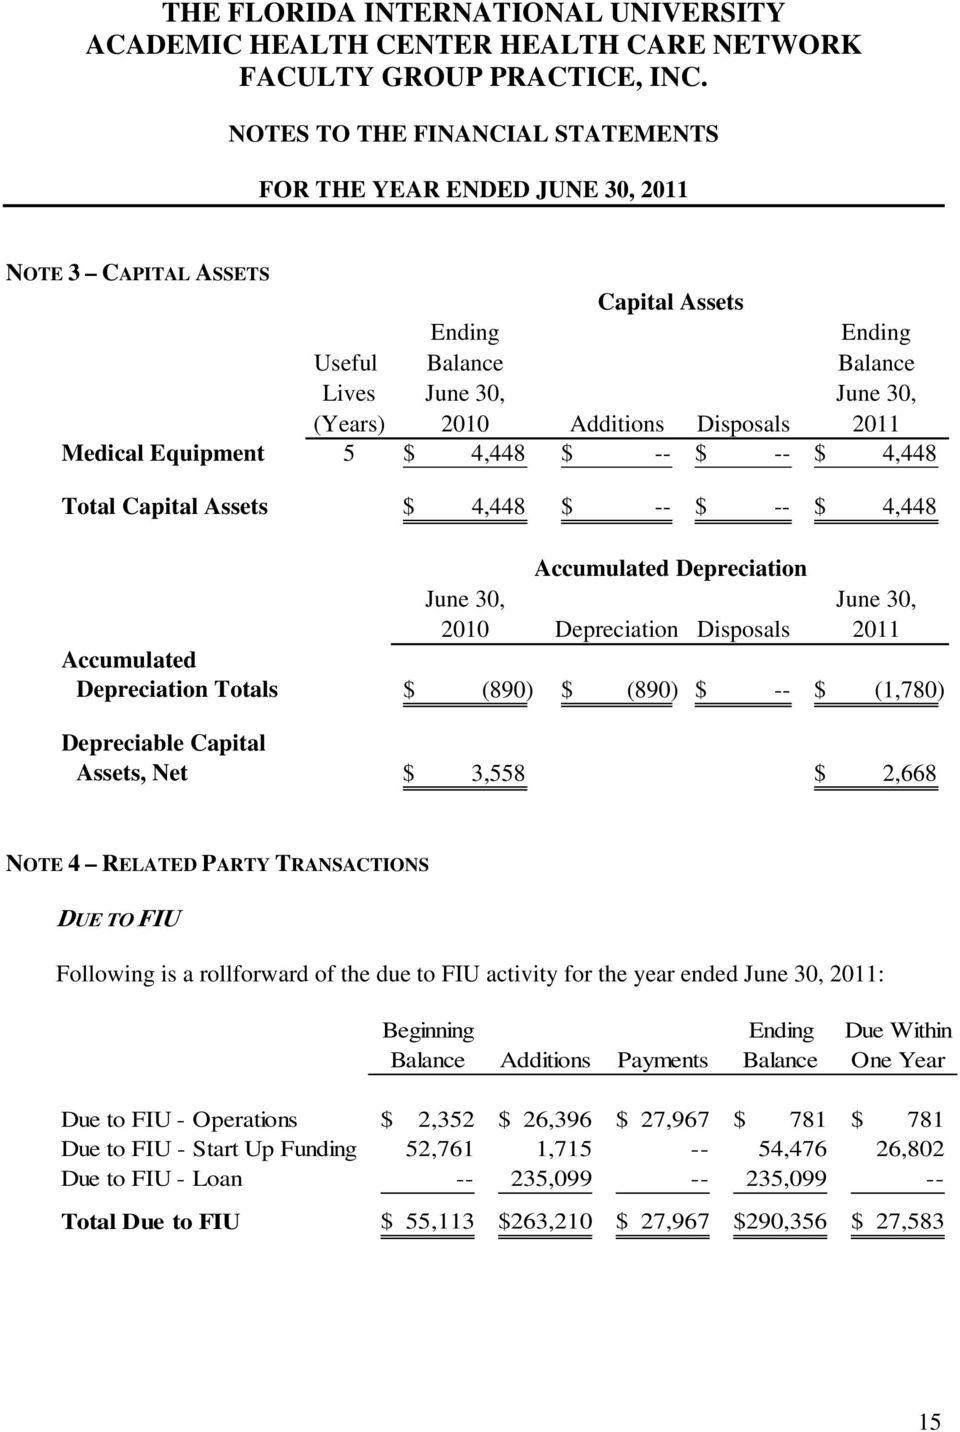 Totals $ (890) $ (890) $ -- $ (1,780) Depreciable Capital Assets, Net $ 3,558 $ 2,668 NOTE 4 RELATED PARTY TRANSACTIONS DUE TO FIU Following is a rollforward of the due to FIU activity for the year